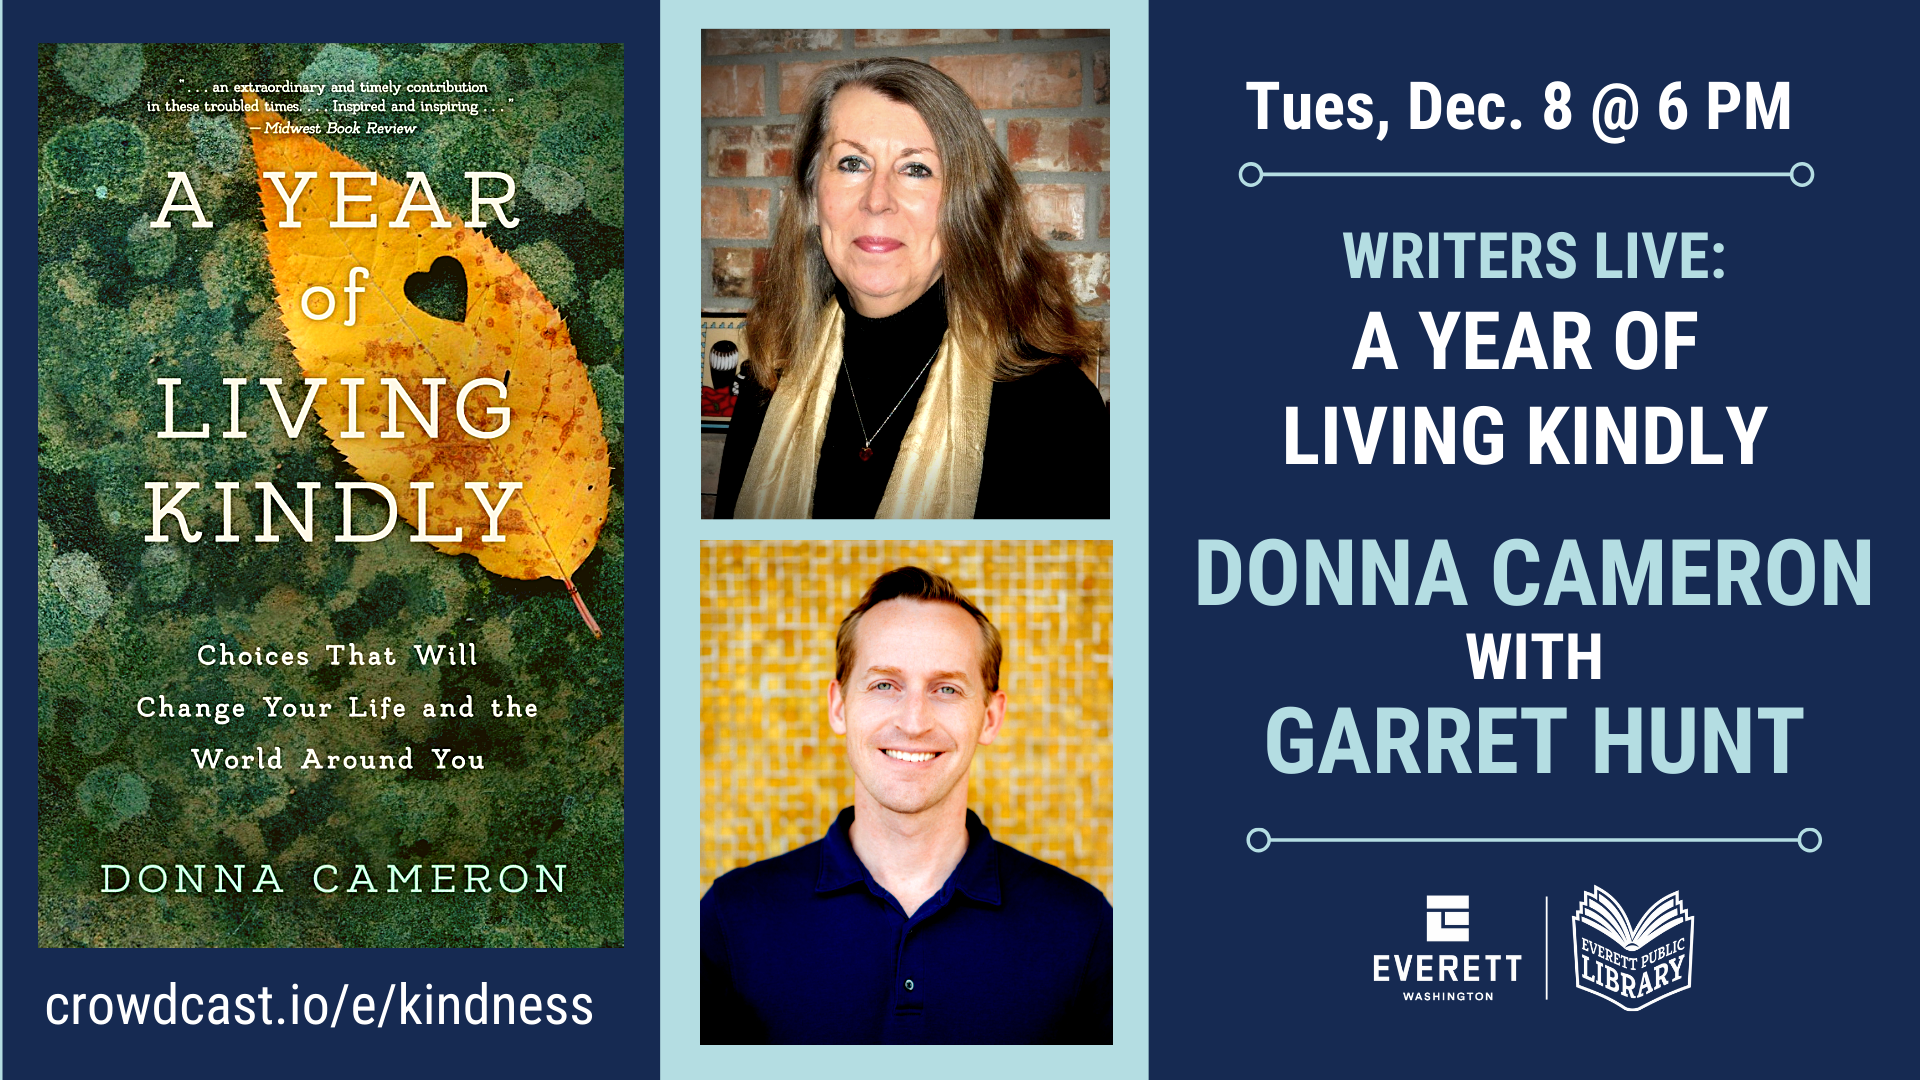 Graphic showing the book A Year of Living Kindly and photos of author Donna Cameron and Garret Hunt